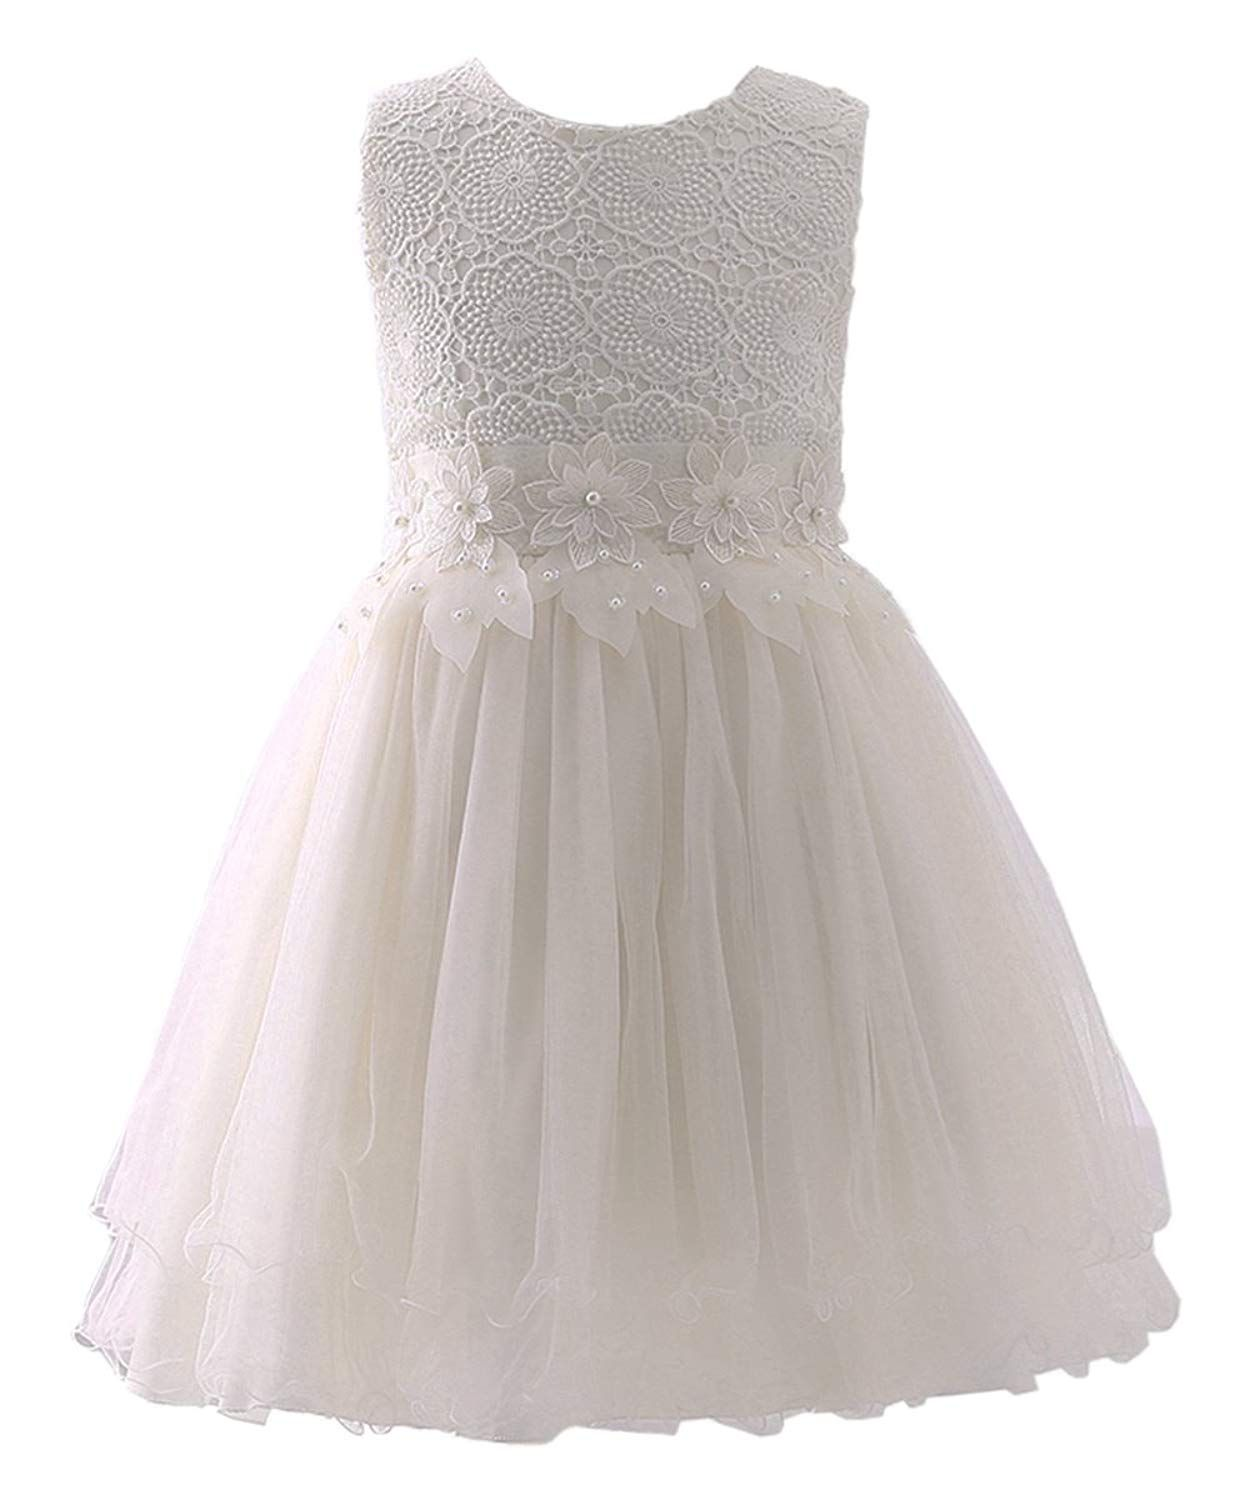 7f1732ee18d6 Amazon.com: Abaosisters Flower Girl Dress Lace Crochet Bow Sash Party Wear 6 -13 Year Old Ivory 10-11 yrs: Clothing